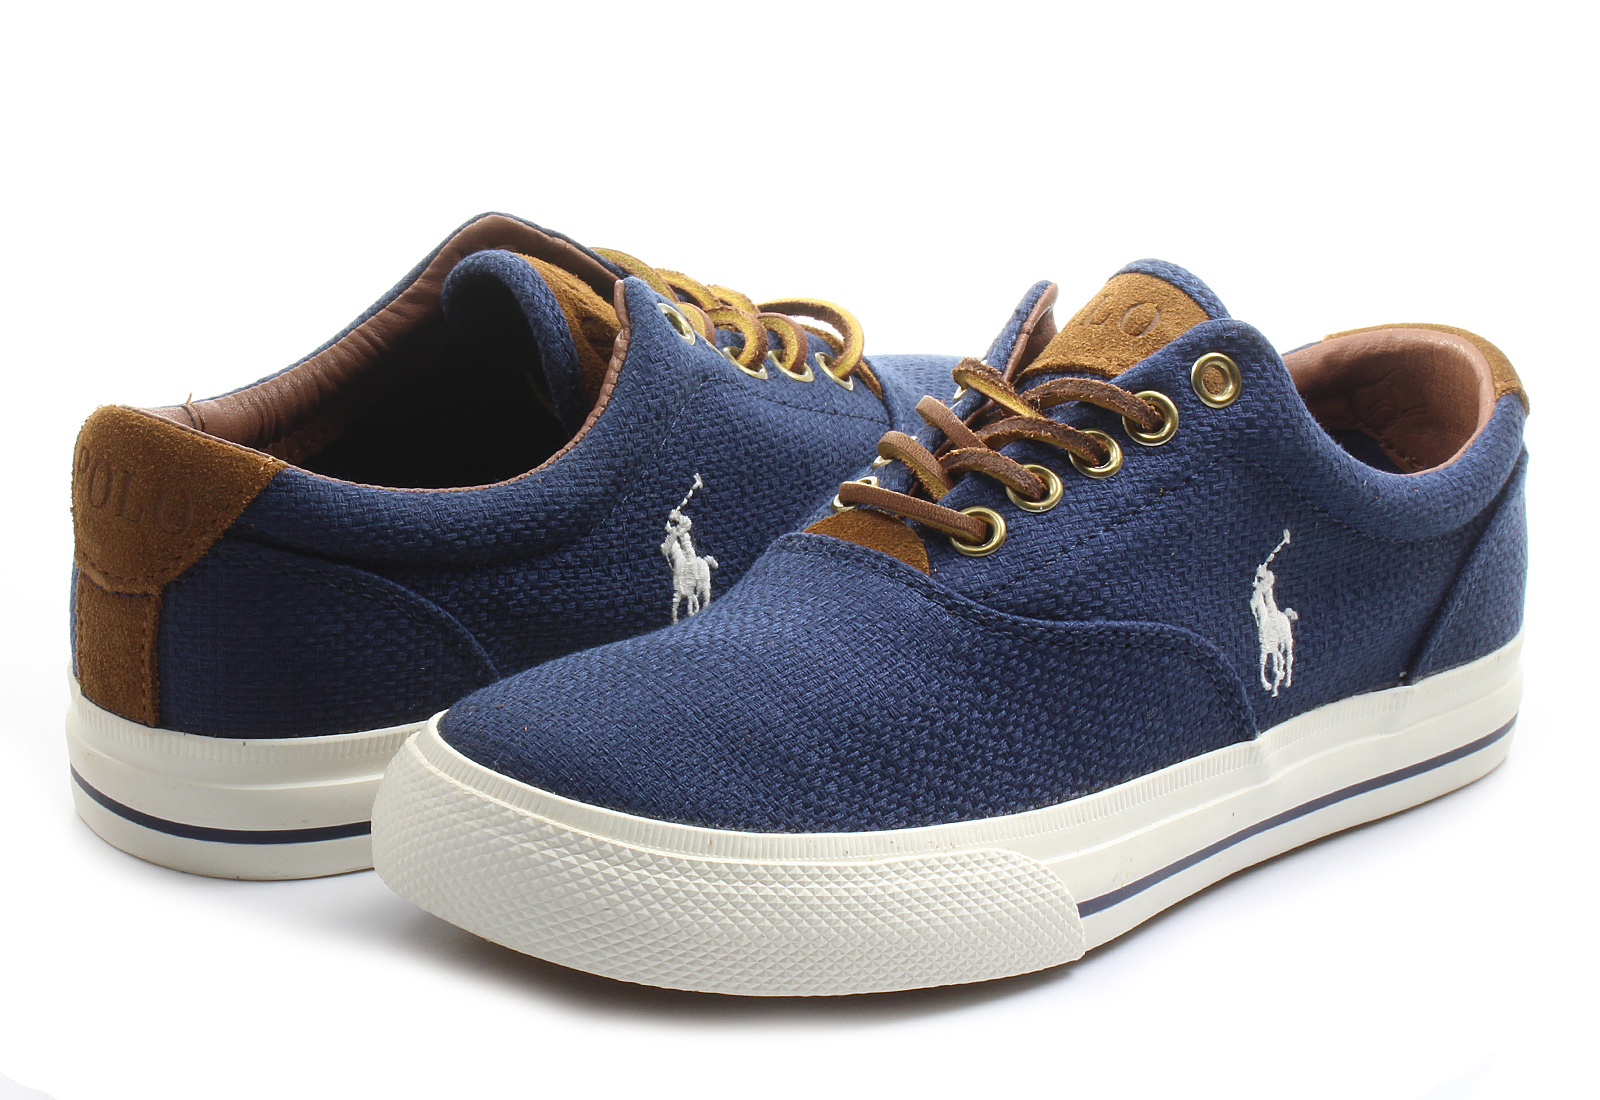 Polo Shoes For Men